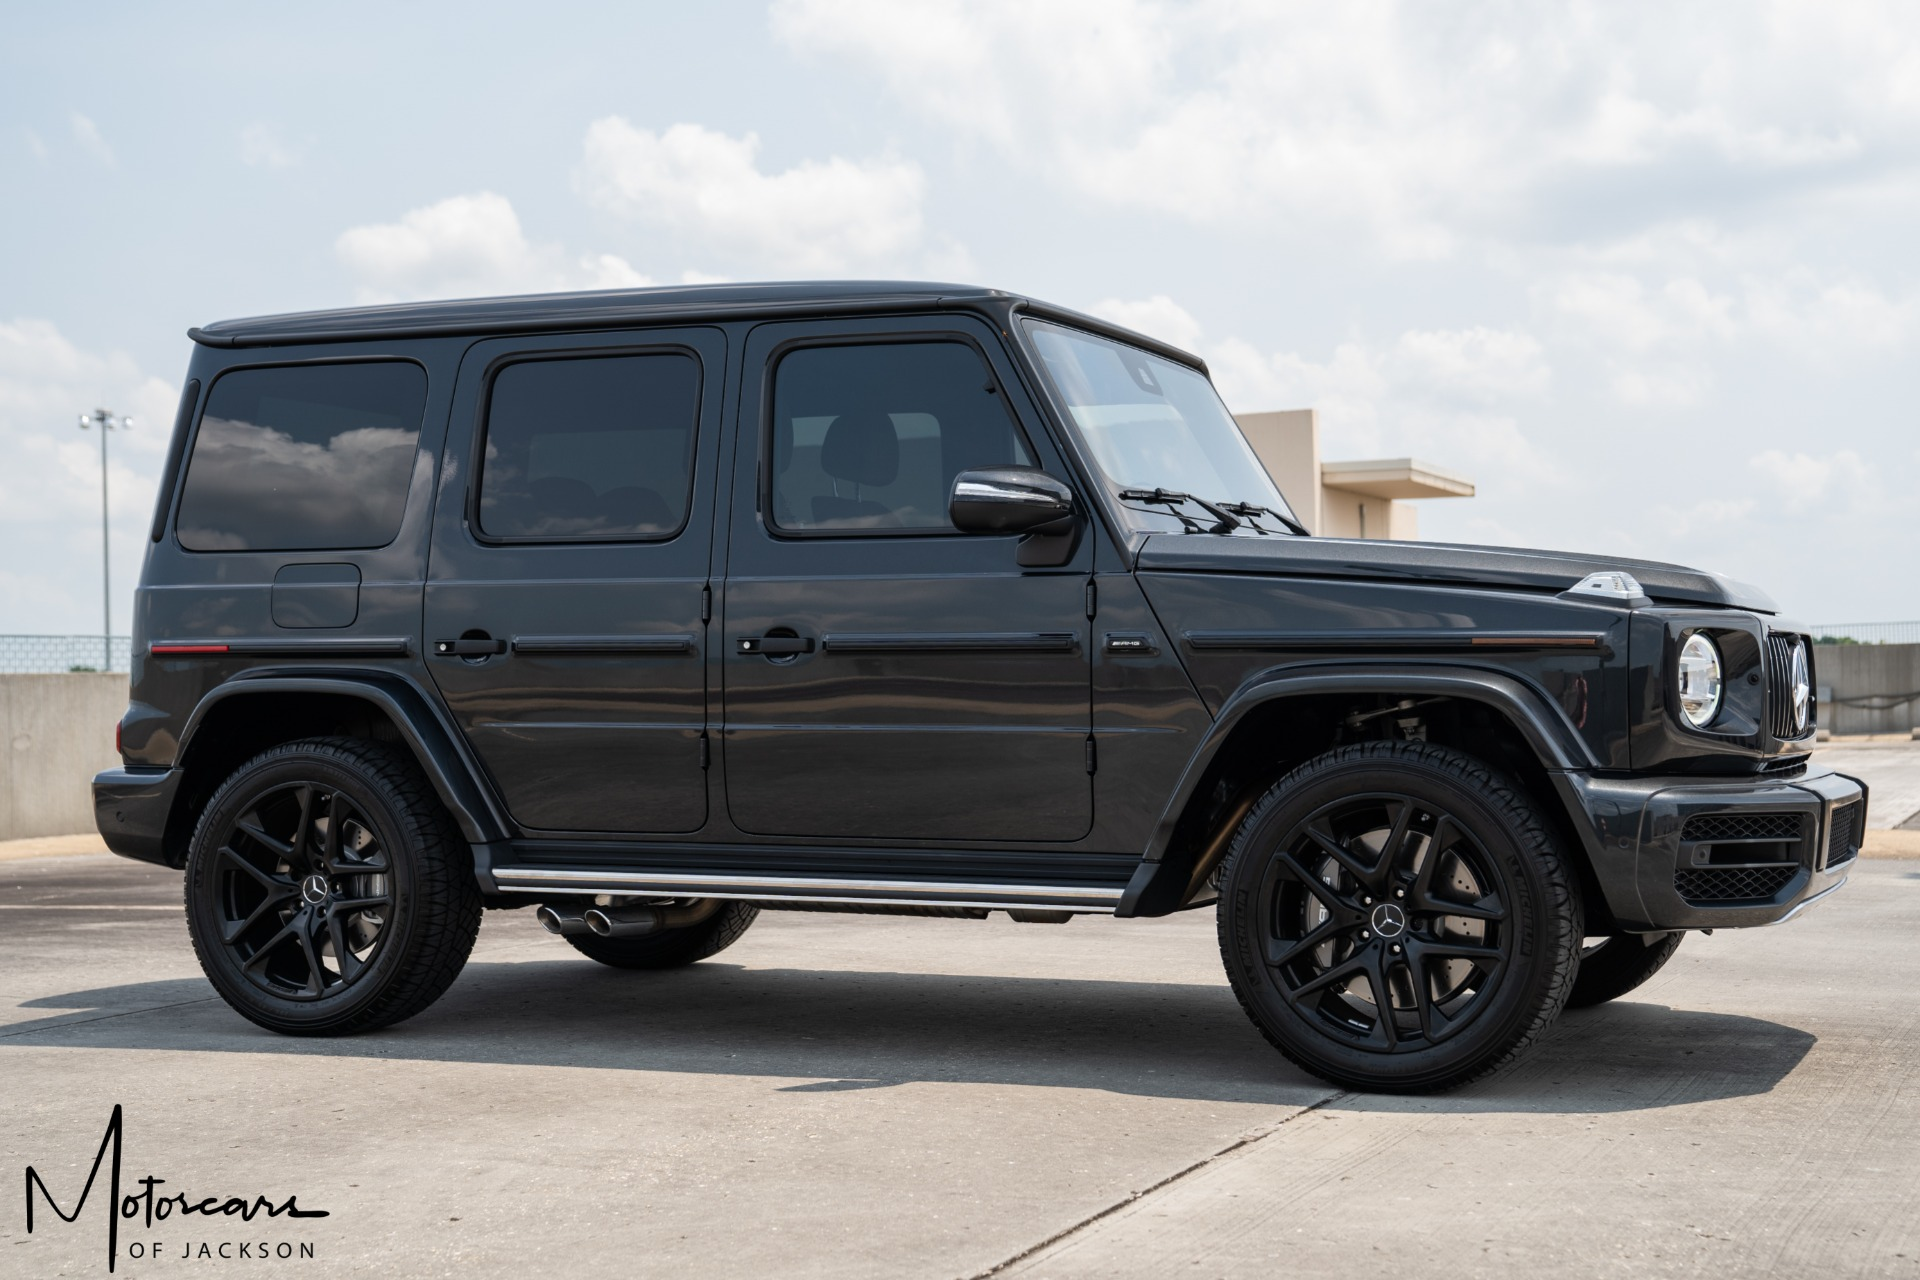 Used-2021-Mercedes-Benz-G-Class-AMG-G63-Jackson-MS